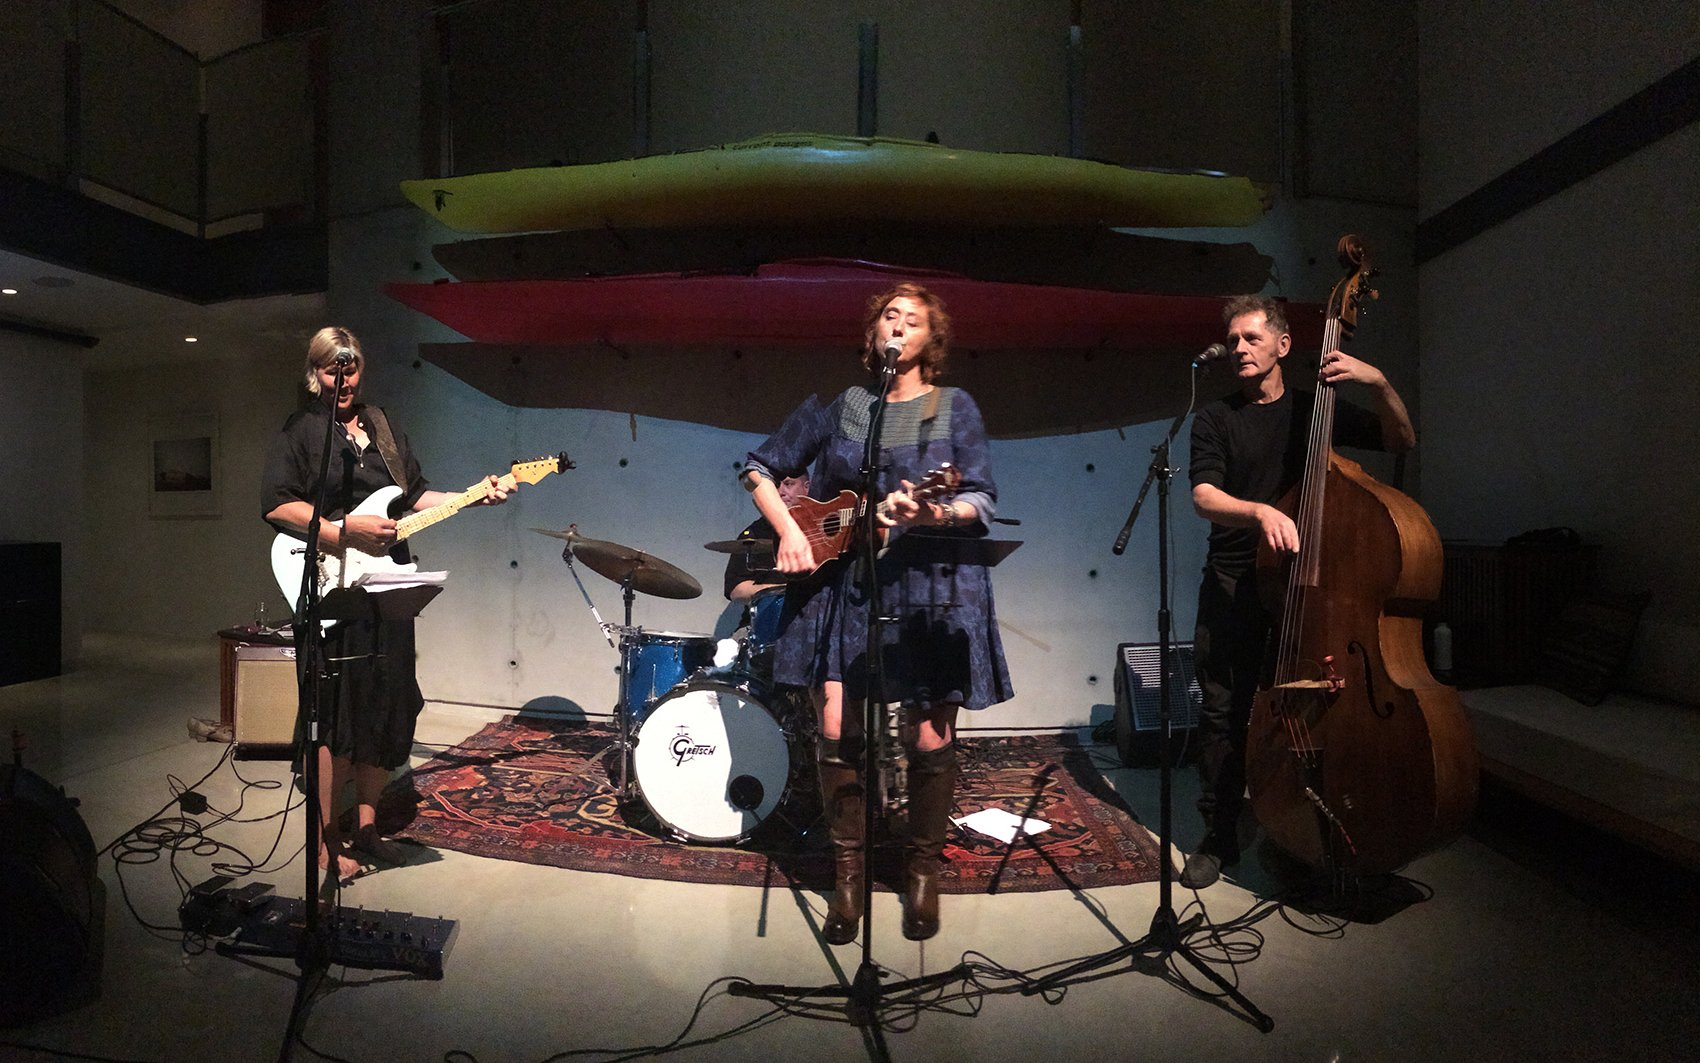 Moira Chicilo performing with blue dirt girl